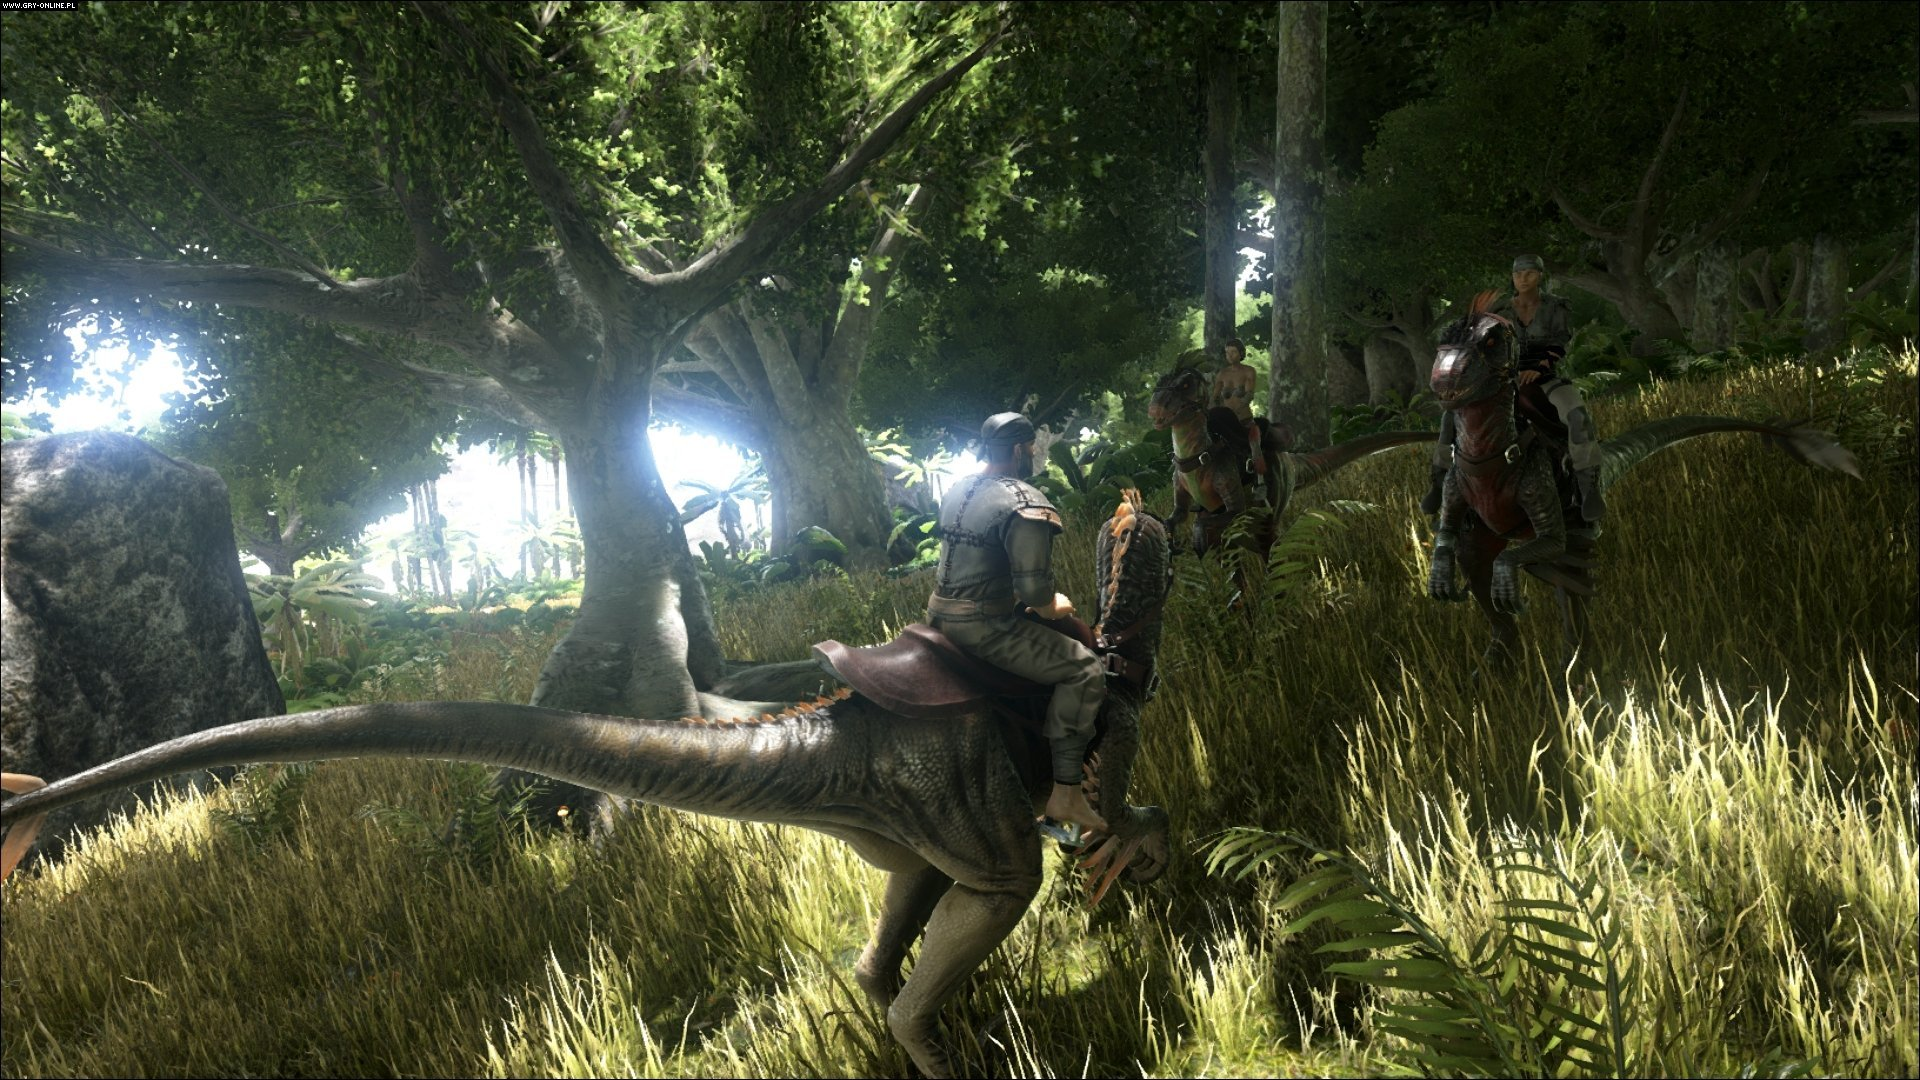 ARK: Survival Evolved PC, PS4, XONE Gry Screen 123/148, Studio Wildcard